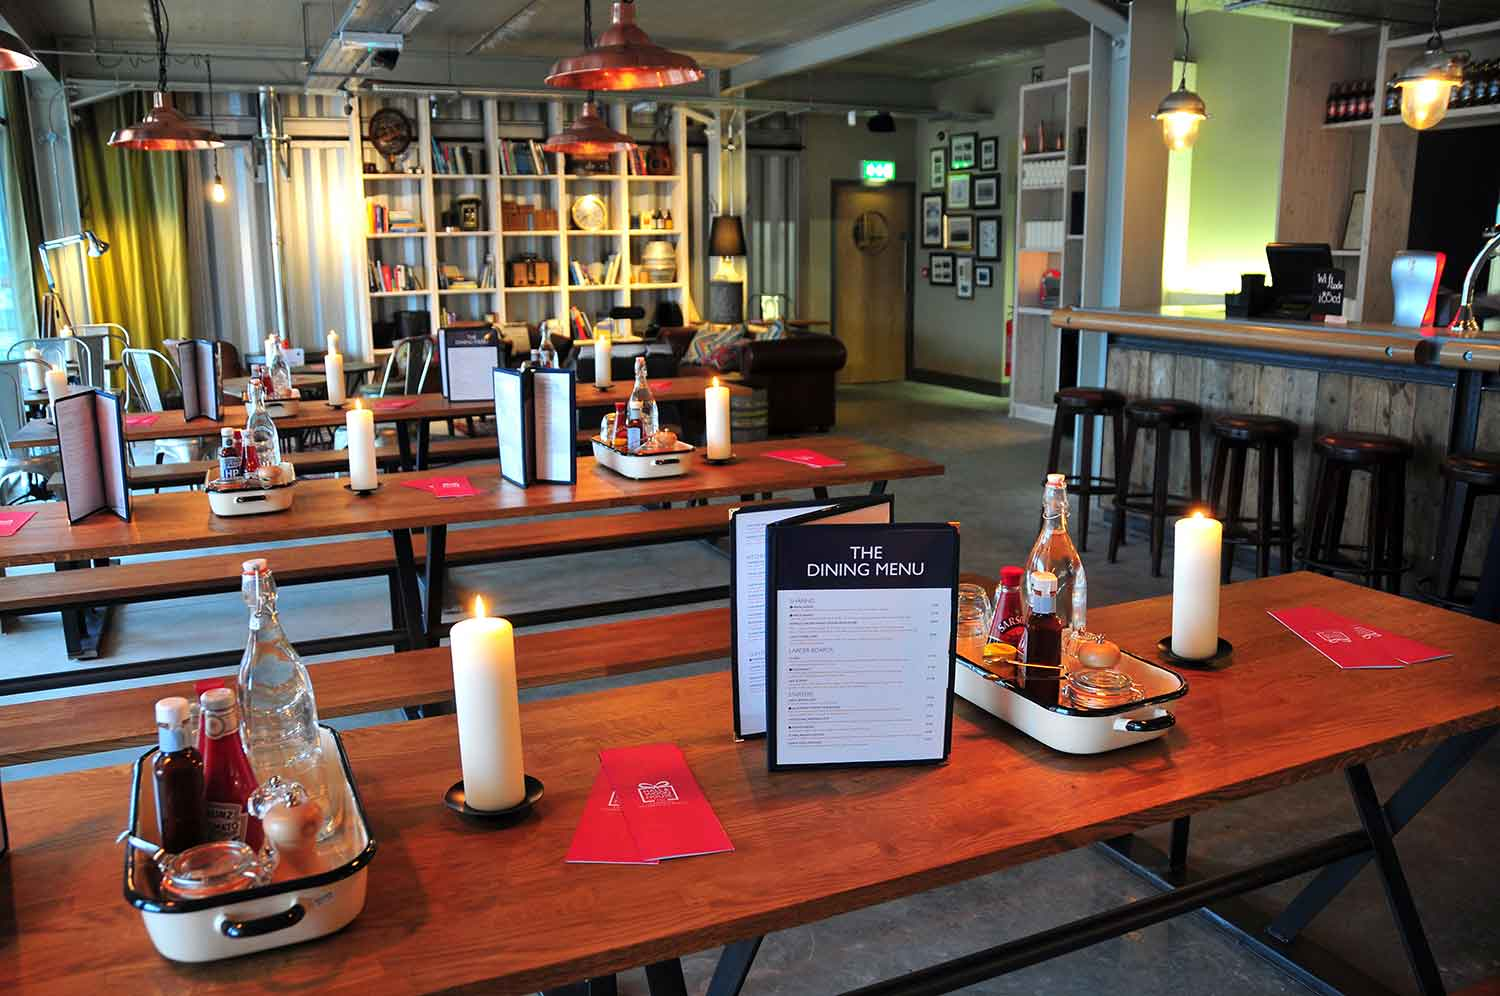 Hall and Woodhouse interior and menu